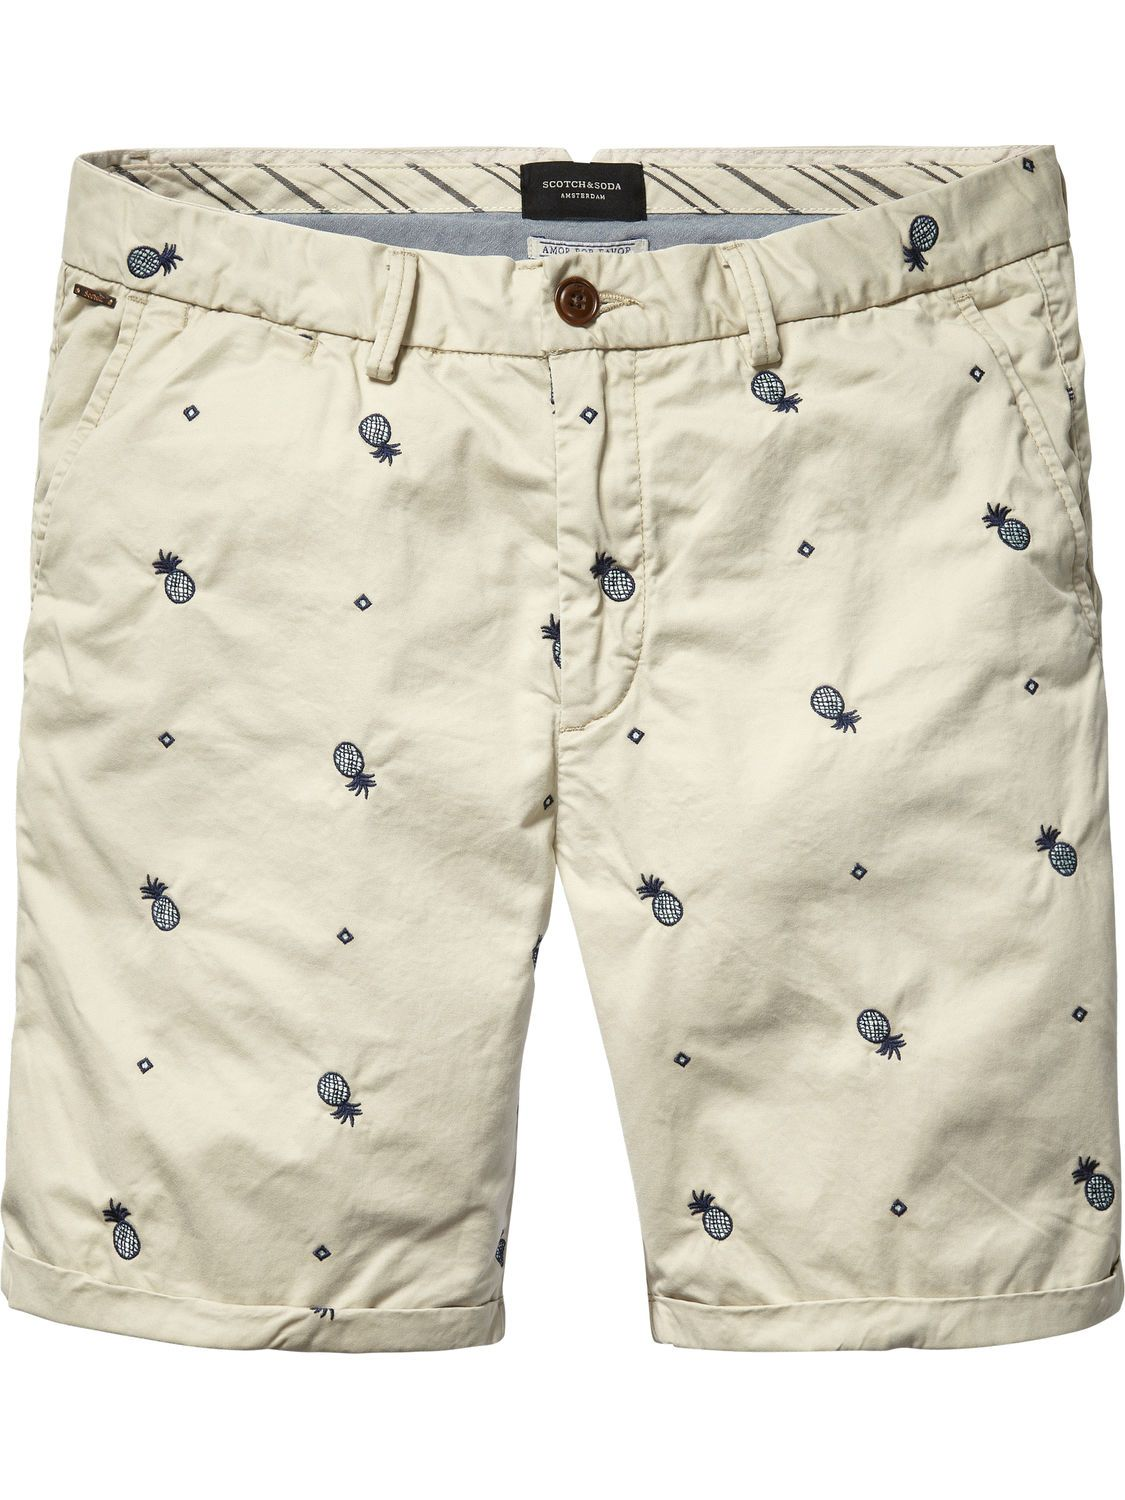 Embroidered Chino Shorts |Short pants|Men Clothing at Scotch & Soda | MEN's trousers/jeans in ...